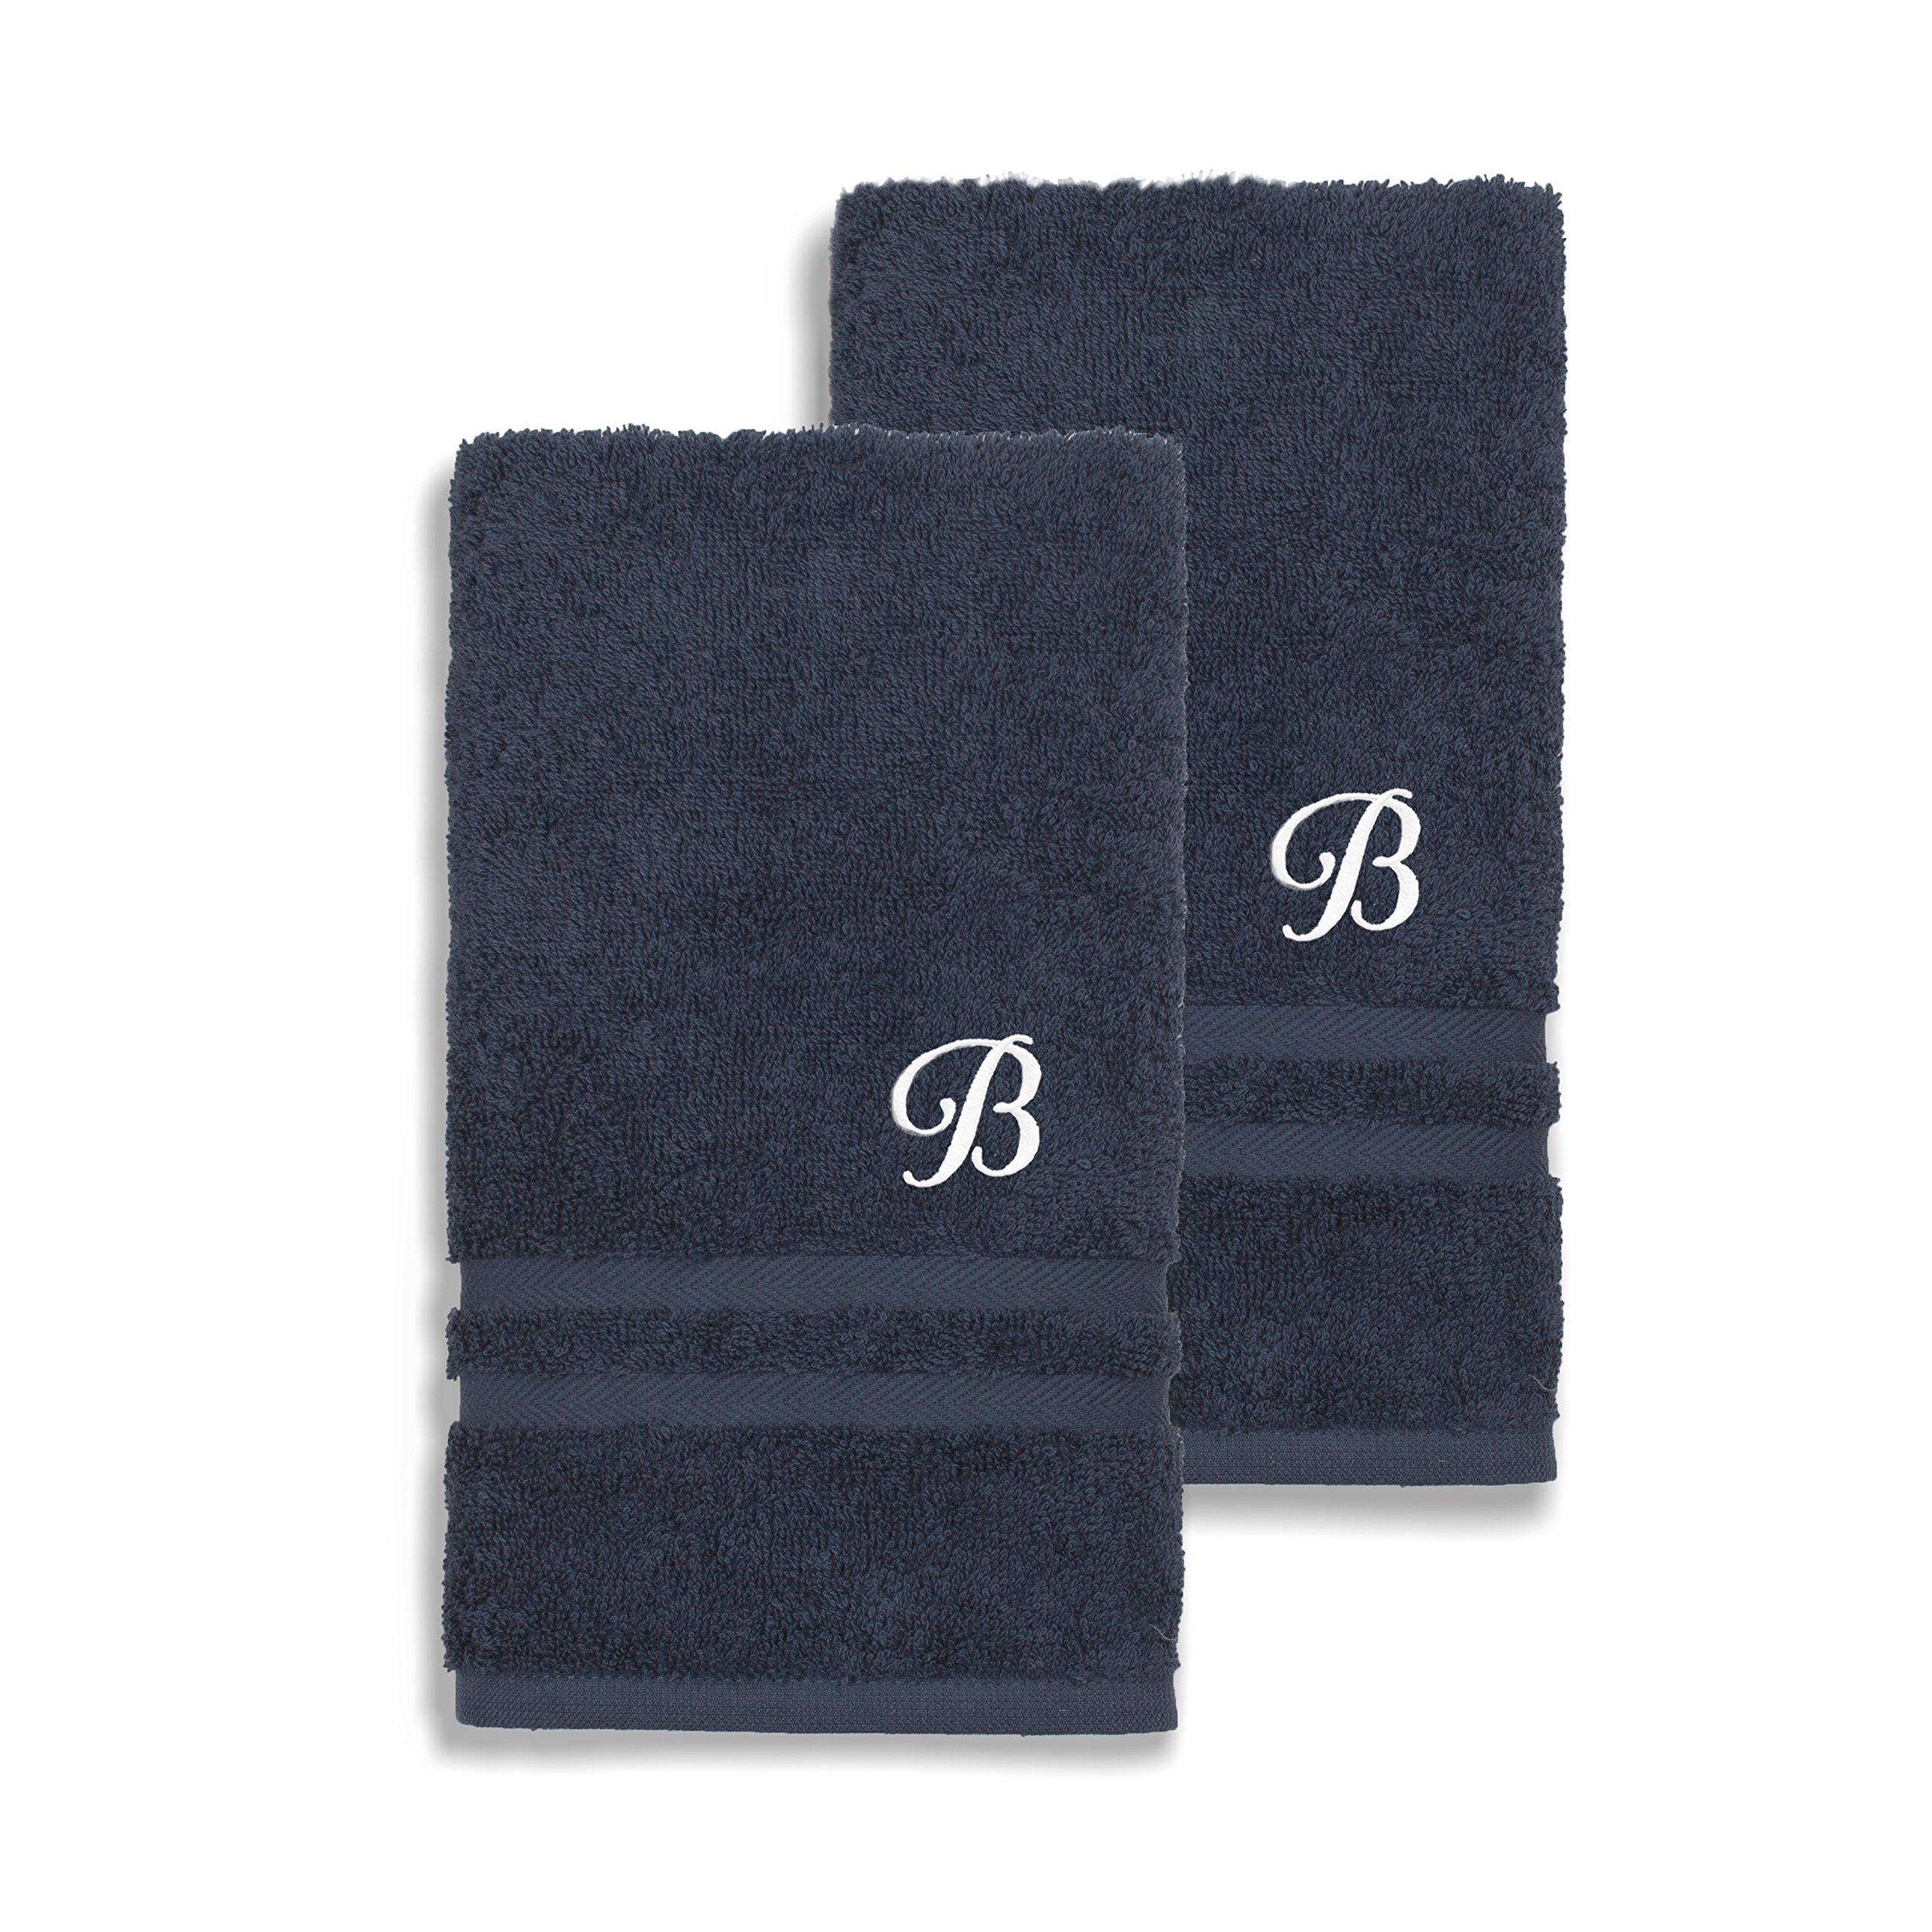 Authentic Hotel and Spa Omni Turkish Cotton Terry Set of 2 Navy Blue Hand Towels with White Script Monogrammed Initial Navy Blue/M